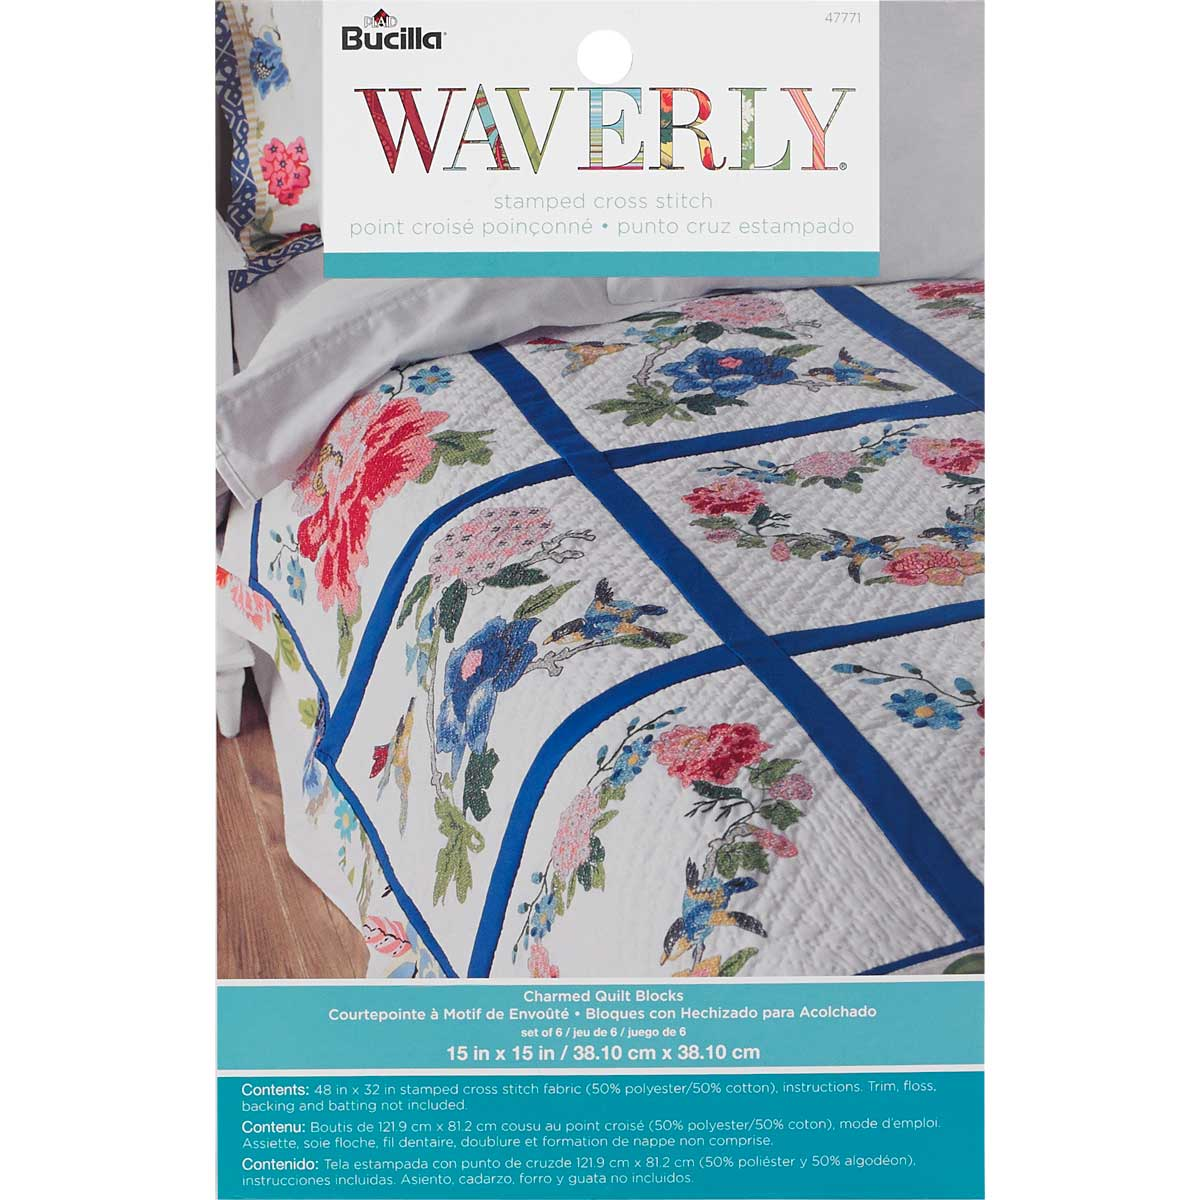 Bucilla ® Waverly ® Charmed Collection Stamped Quilt Blocks - 47771